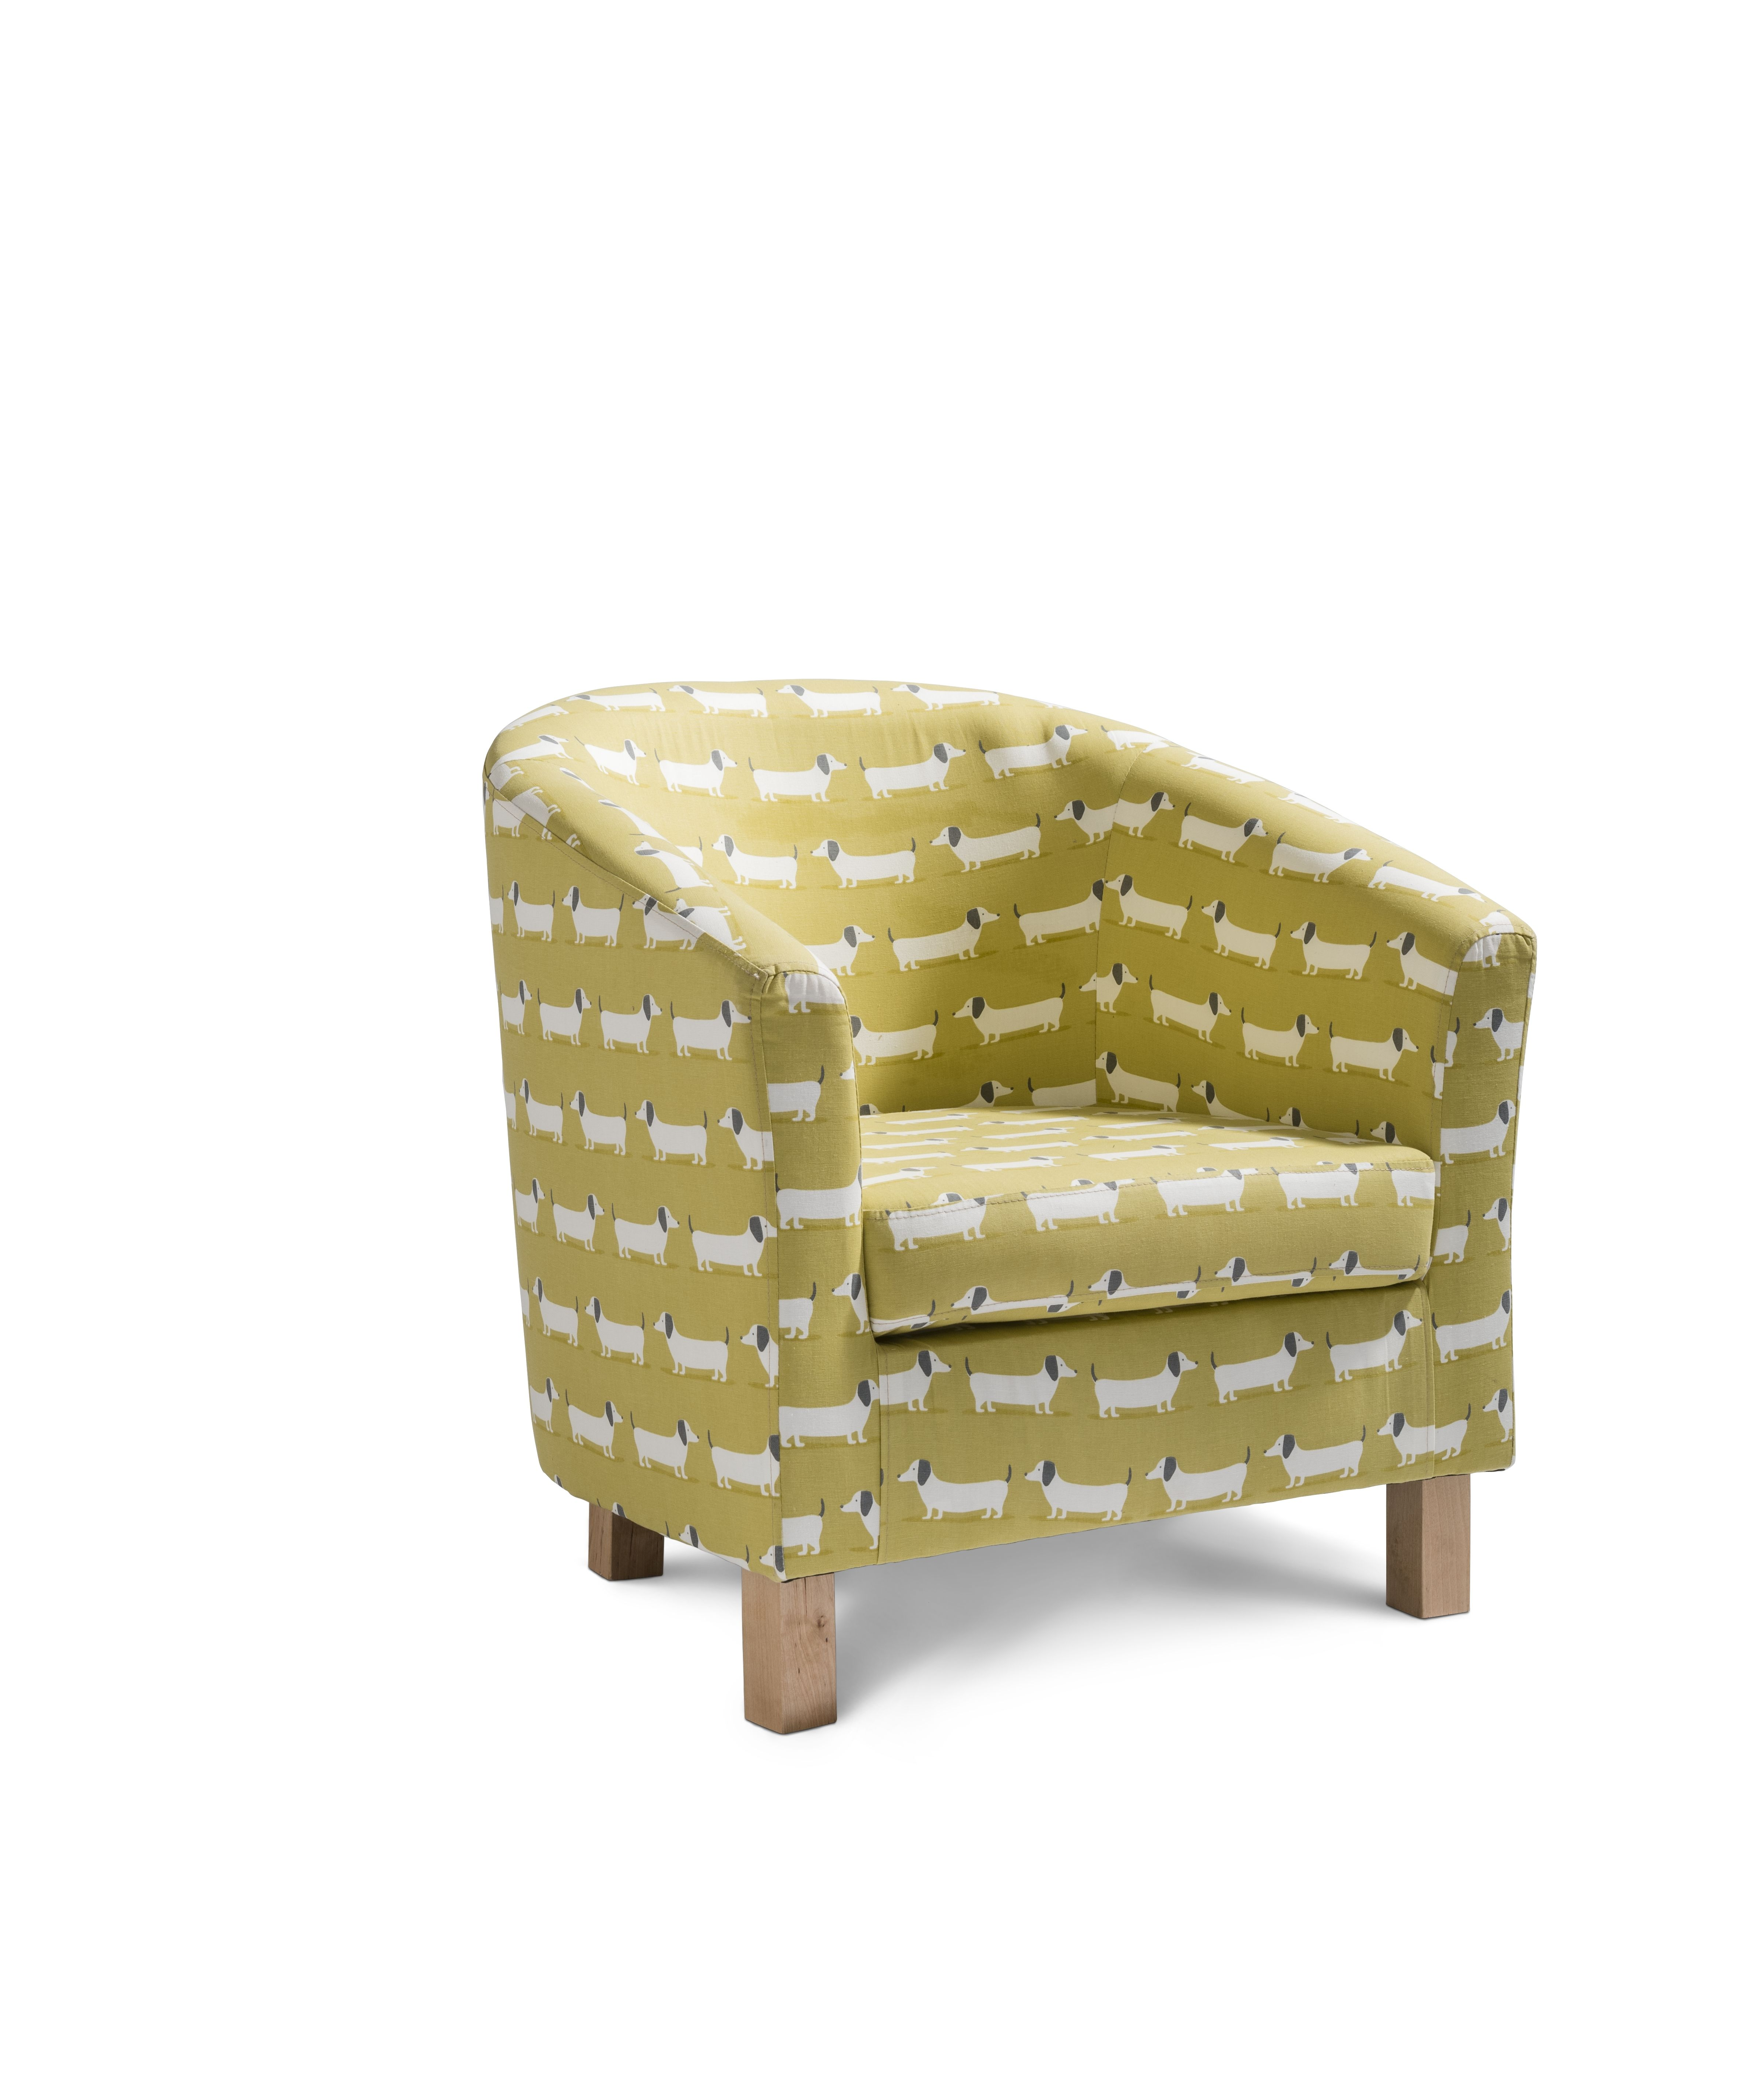 The Egypt Tub Accent Chair In The Hound Dog Pattern Is An Adorable Way To  Add